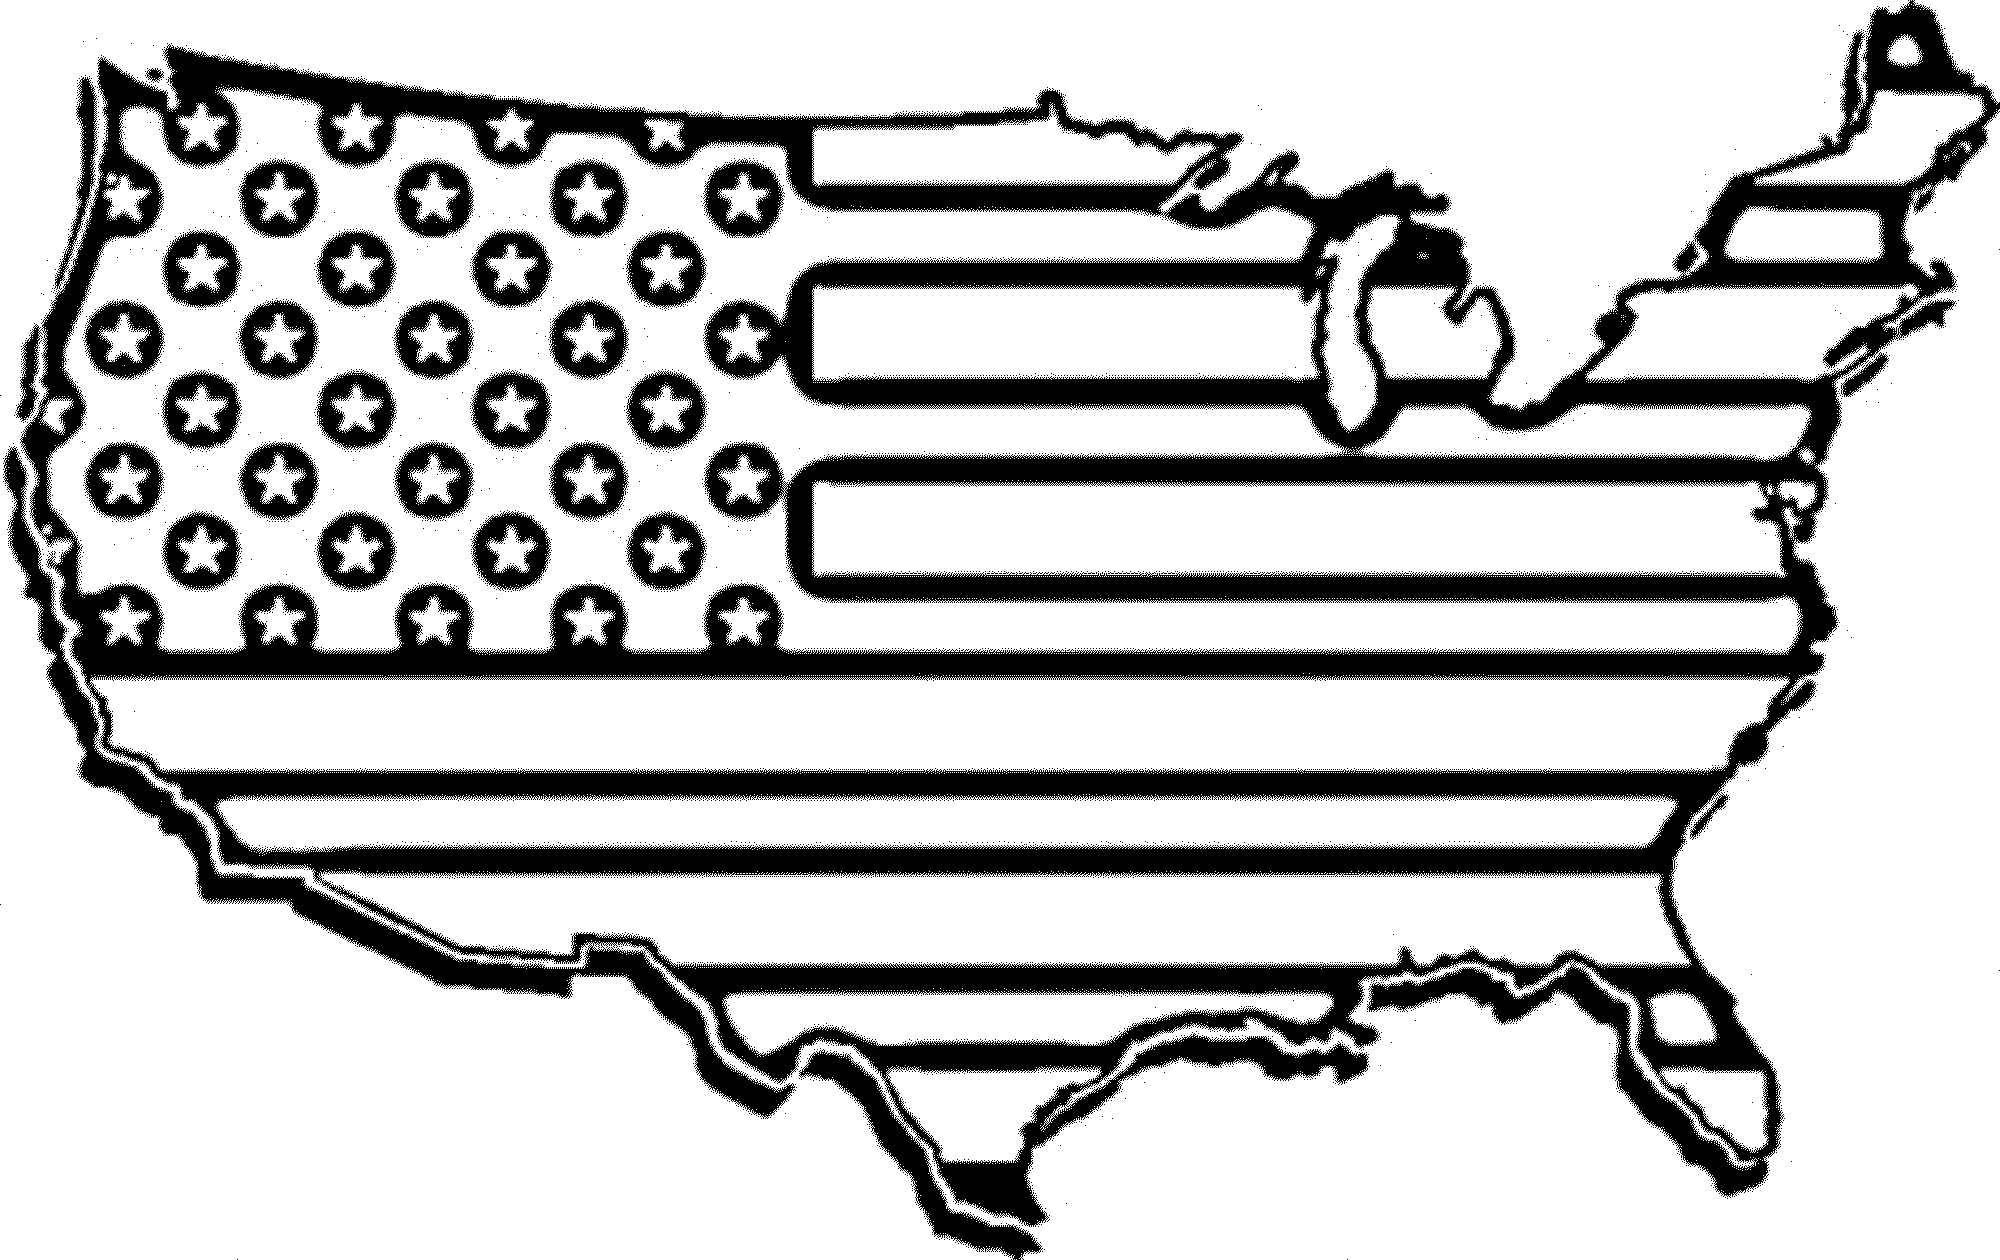 Us map clipart black clipart freeuse stock Black And White United States Map - ClipArt Best clipart freeuse stock